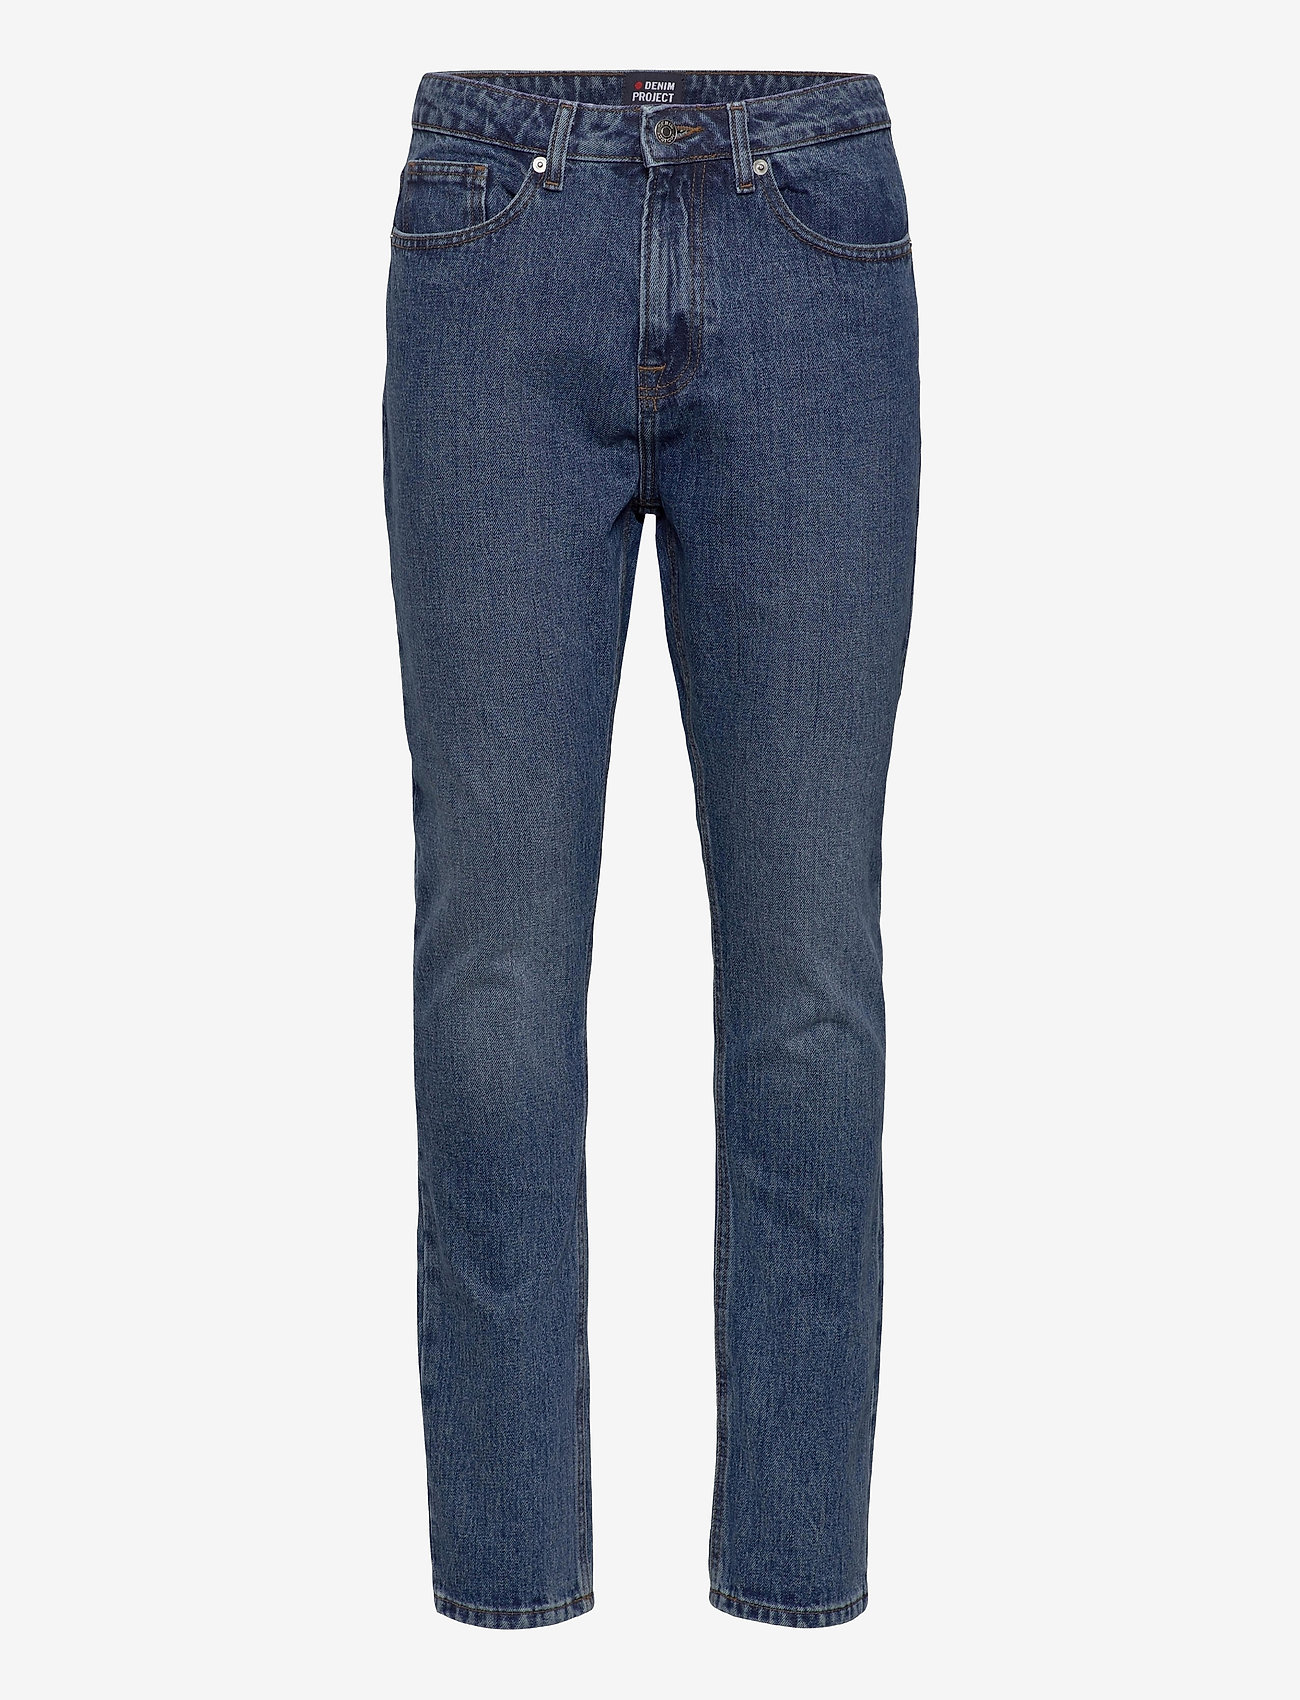 Denim project - Classic Organic Dad Jeans - relaxed jeans - 128 dark wash - 0